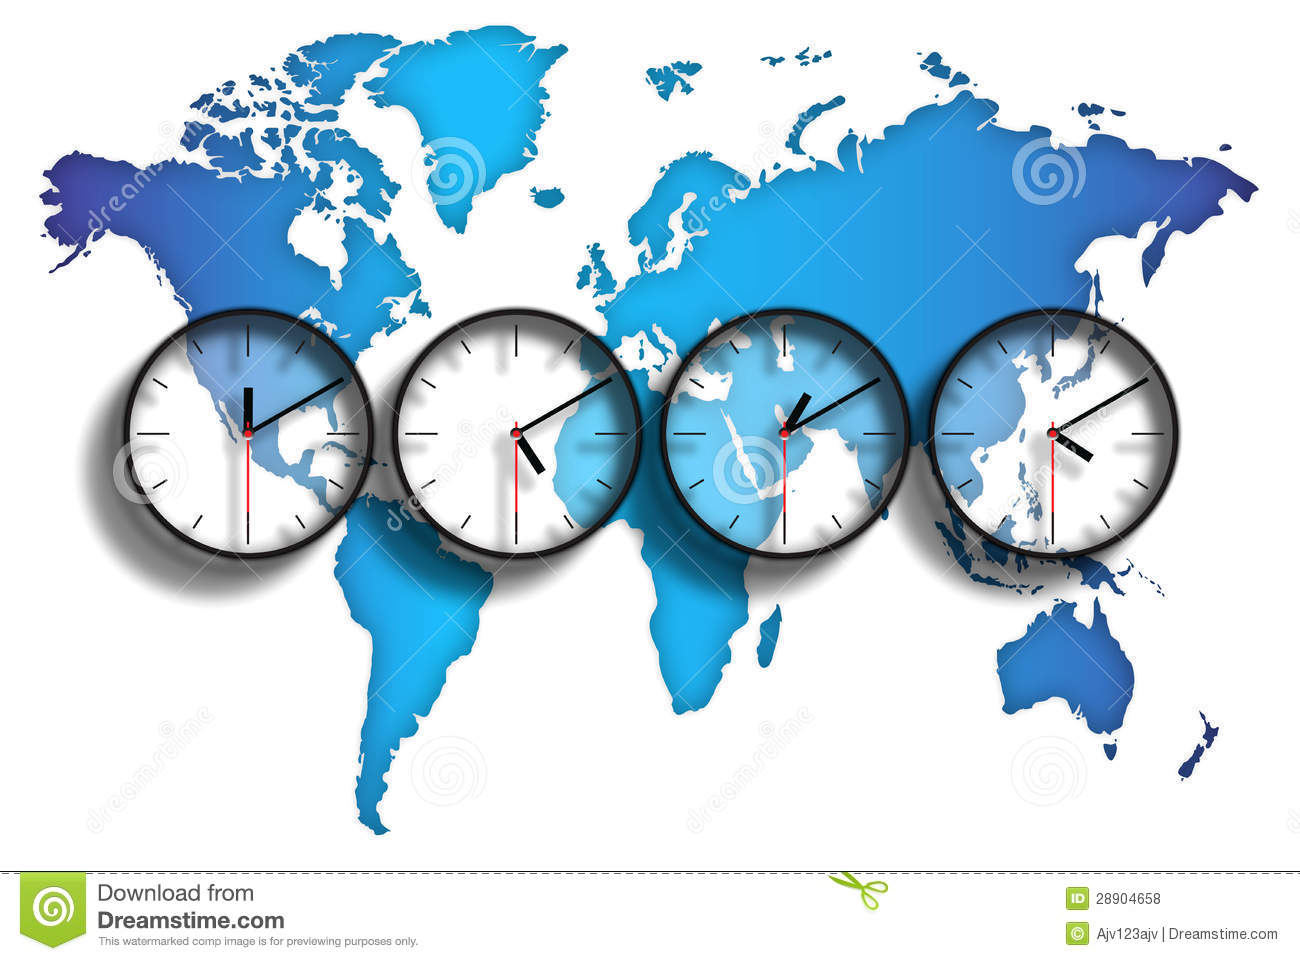 World map time zones stock illustration illustration of kingdoms world map time zones gumiabroncs Gallery